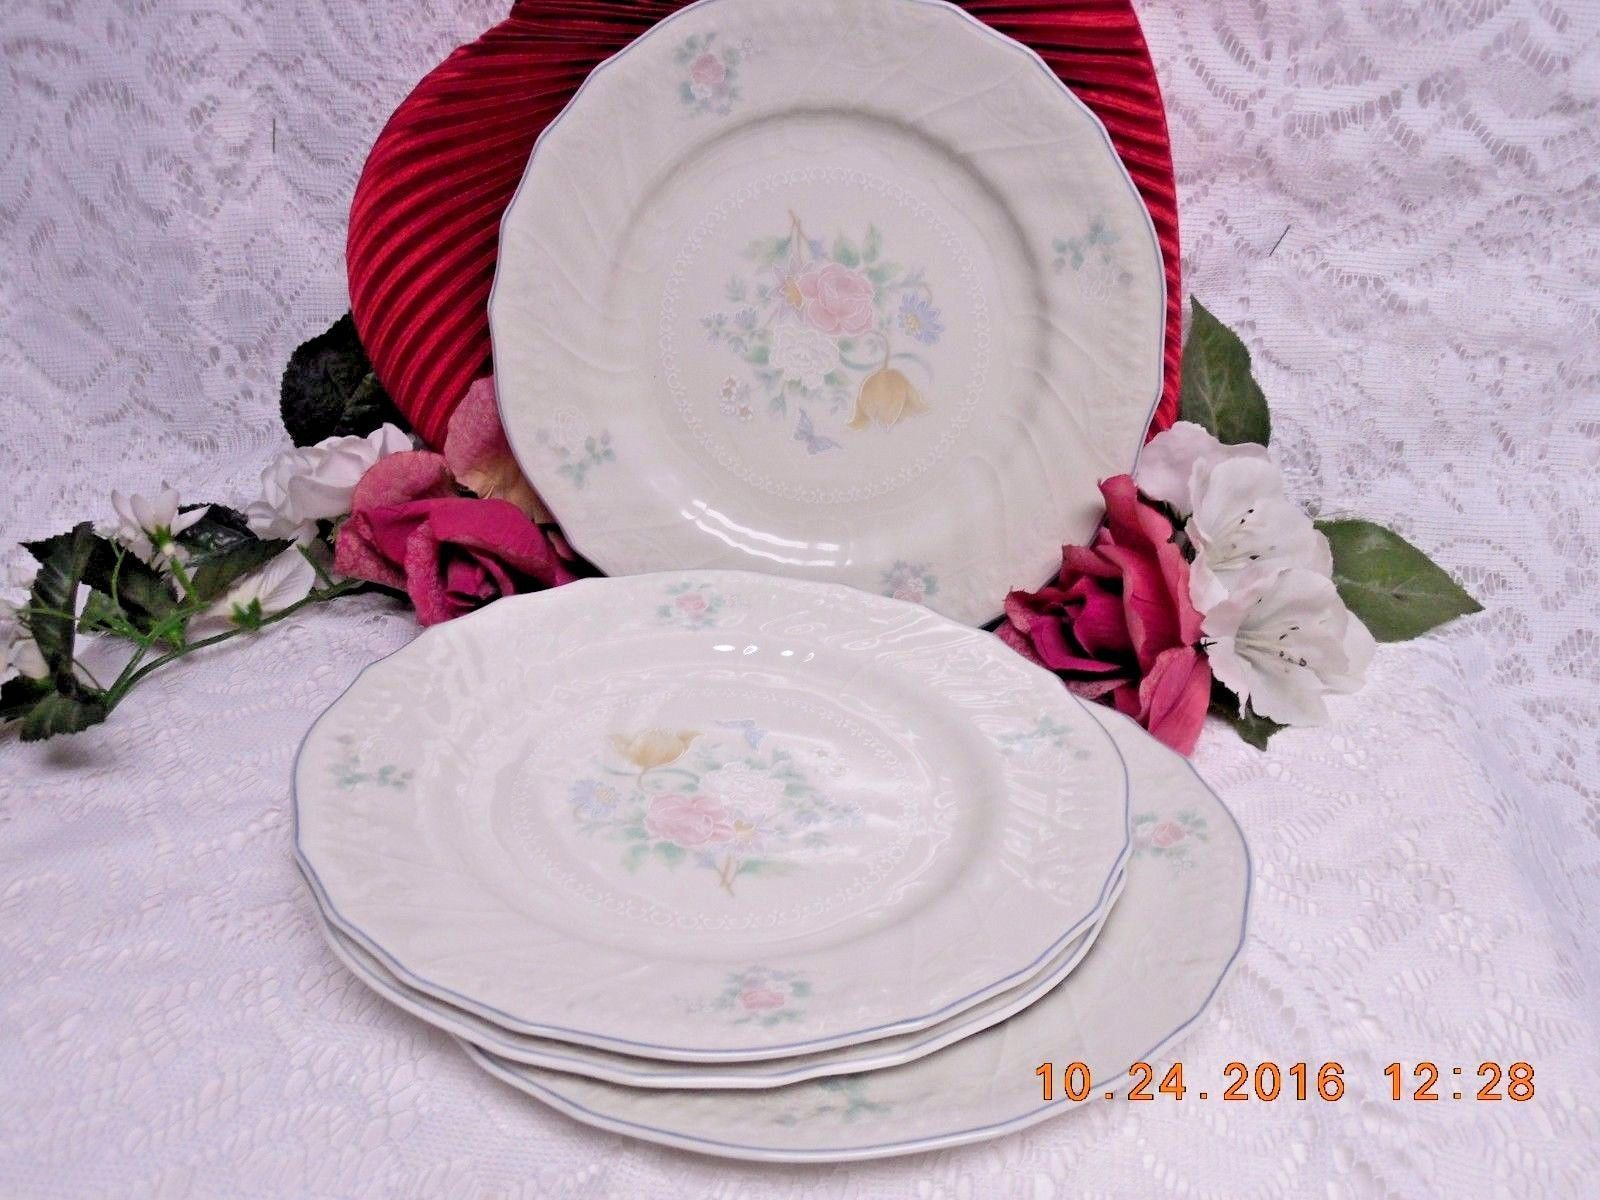 Royal Doulton China Dinnerware The Moselle Collection Valencia 4 Salad plate & Royal Doulton China Dinnerware The Moselle Collection Valencia 4 ...